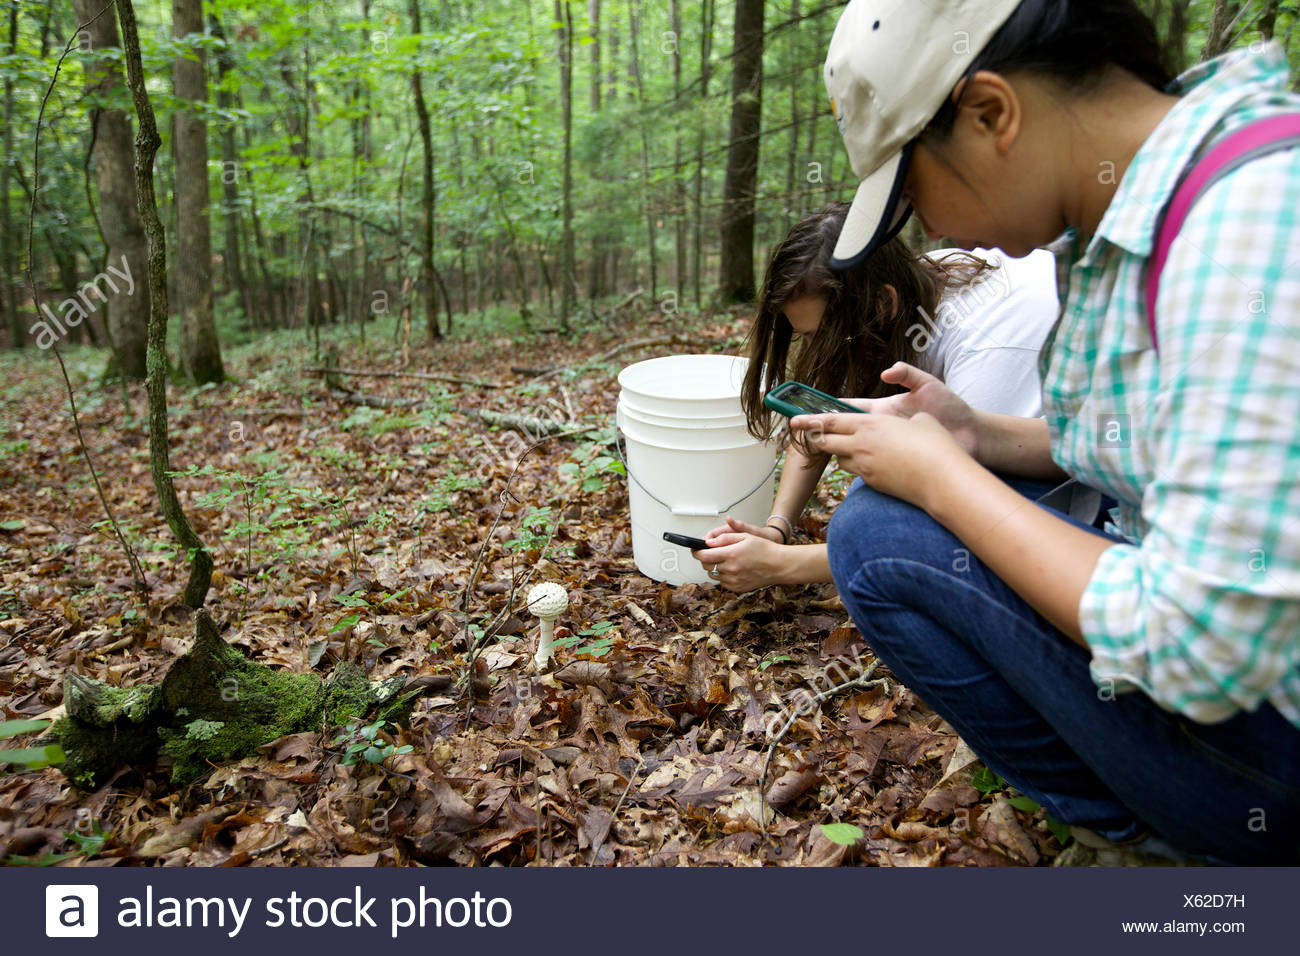 Two mycology students photograph a mushroom before collecting it. - Stock Image